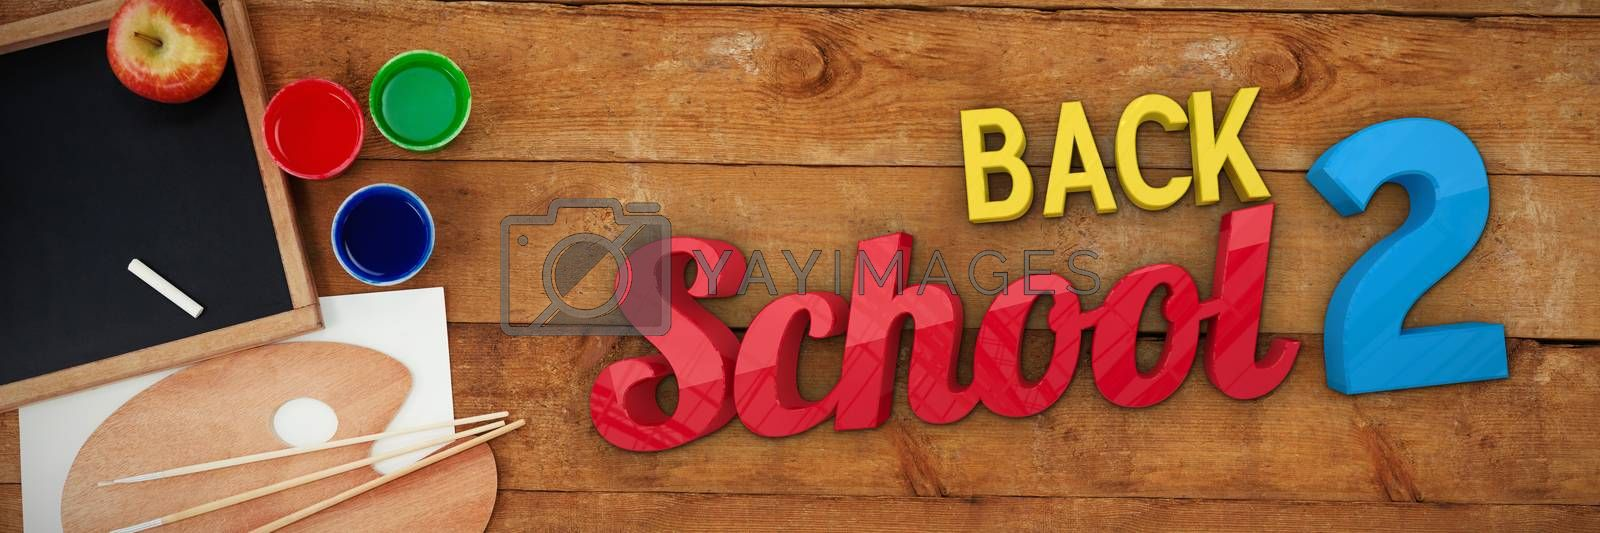 Back to school against palette with chalkboard on table